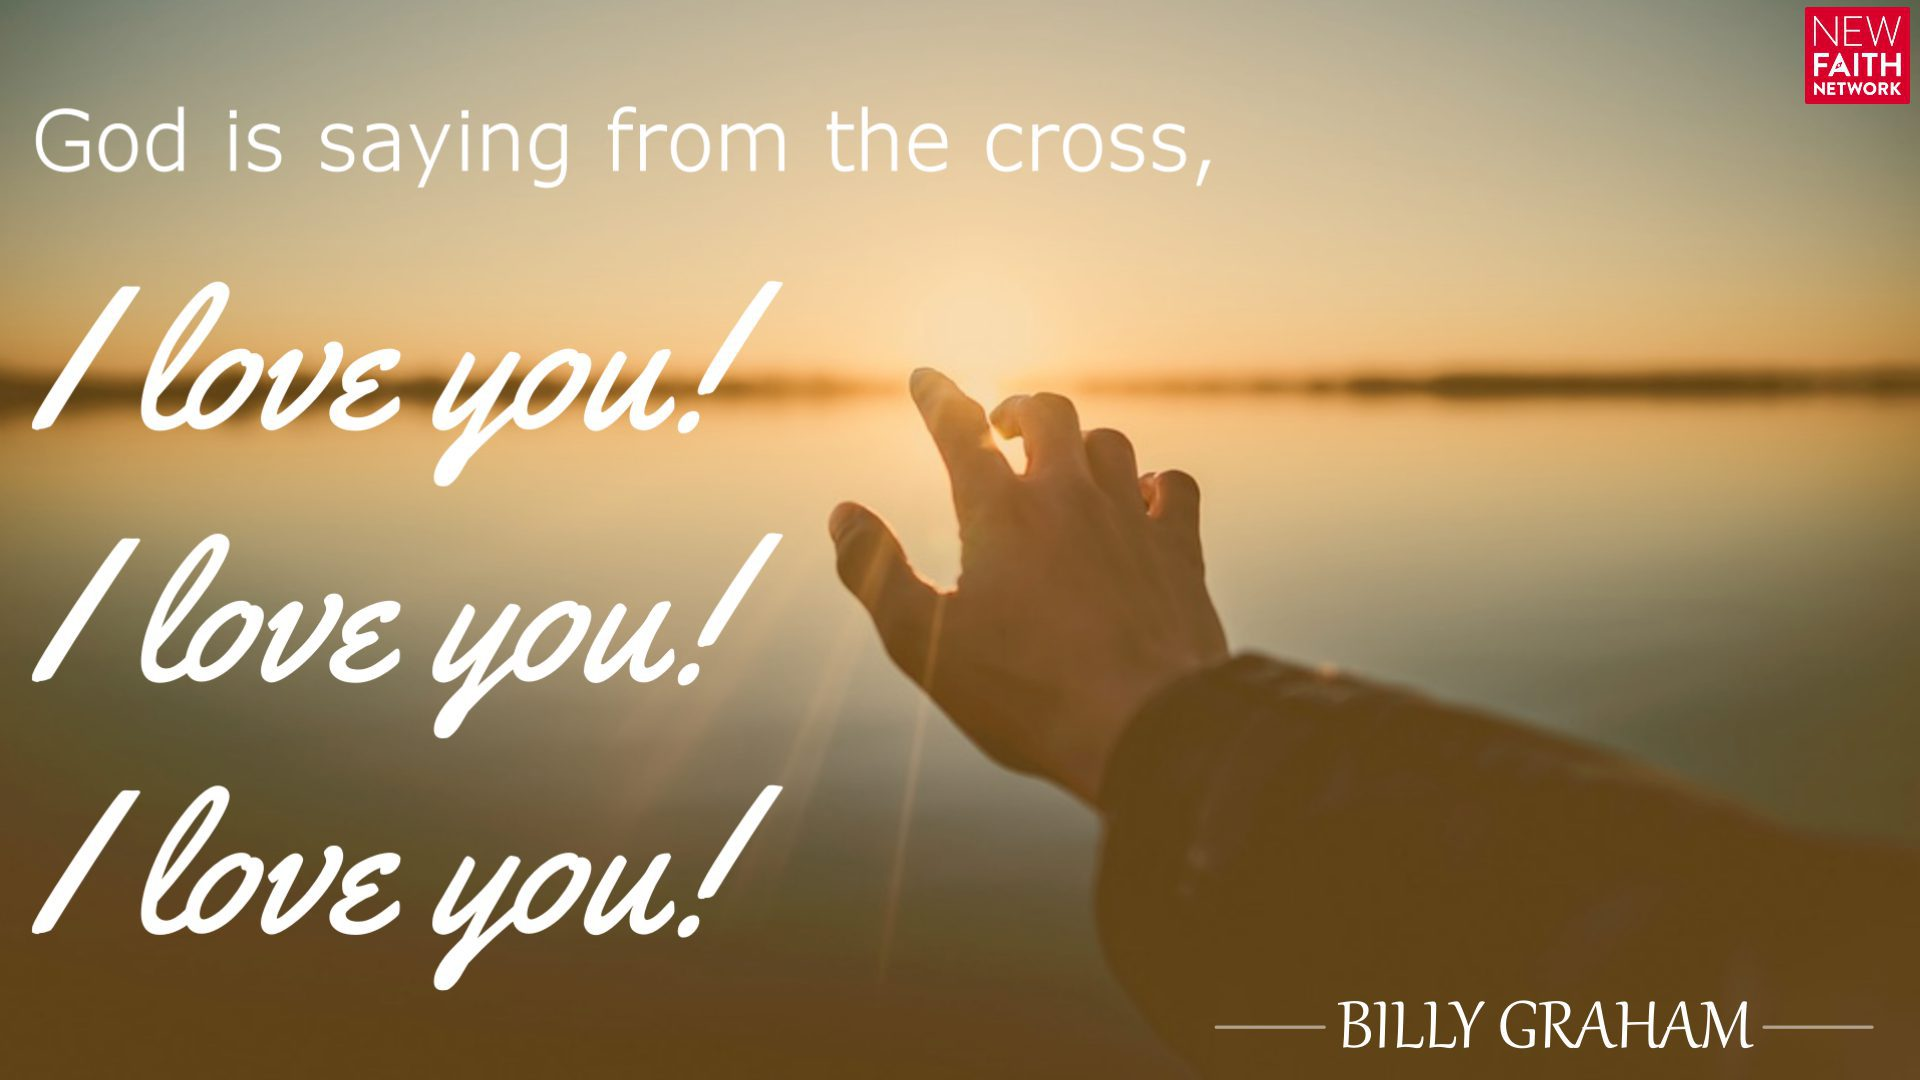 God is saying from the cross, 'I love you! I love you! I love you!'